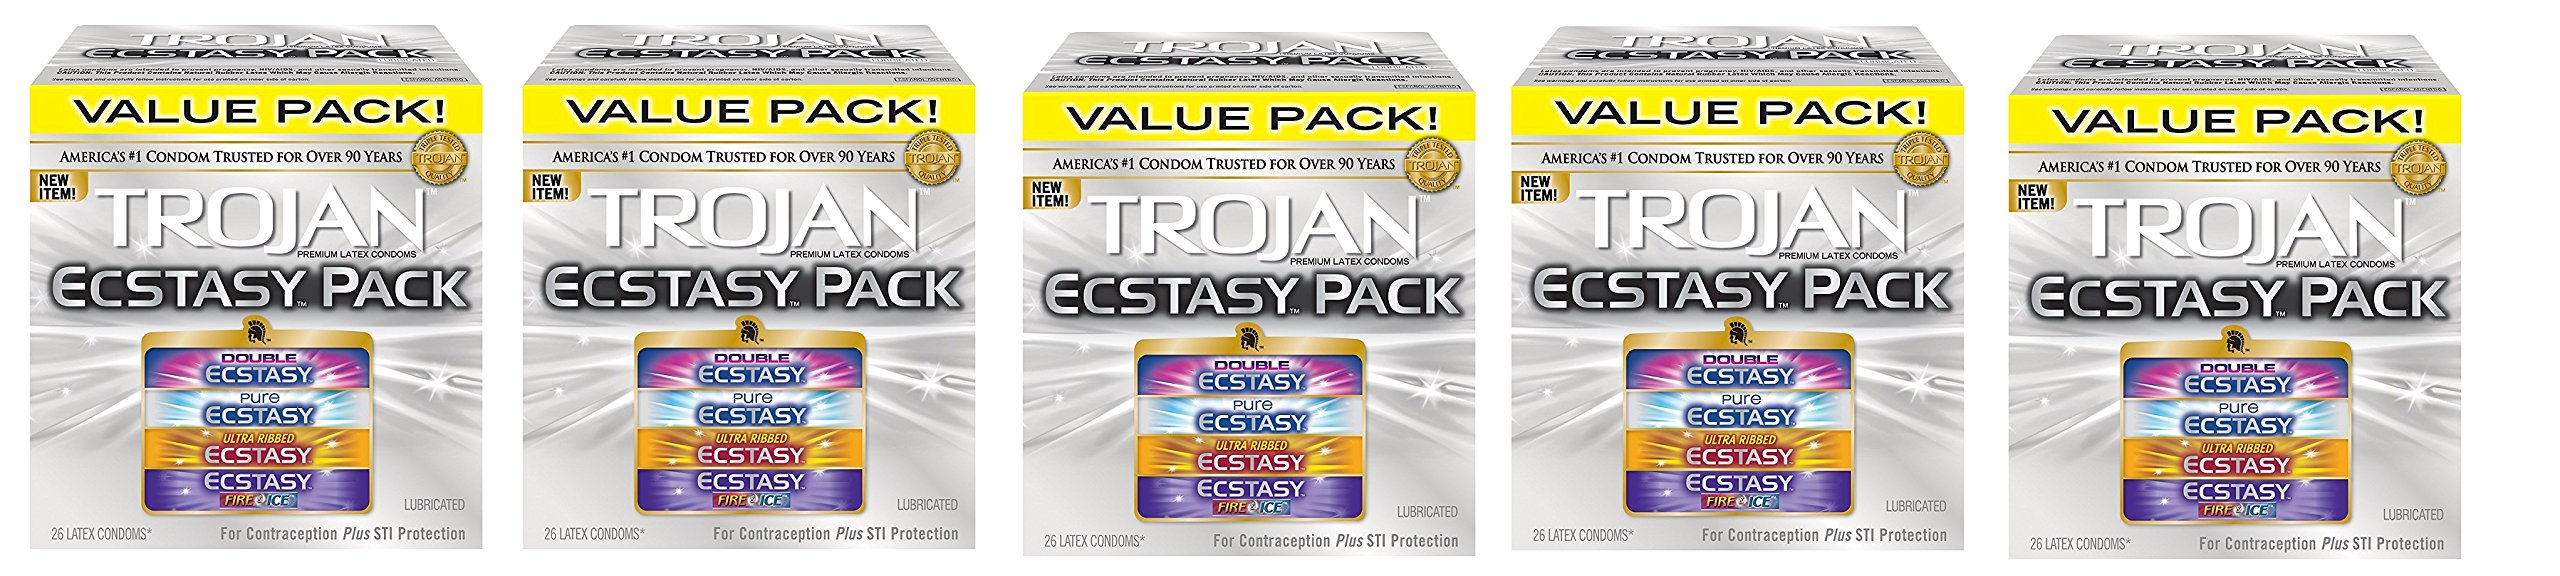 Trojan Ecstasy Pack Lubricated Condoms, 130 Count by Trojan